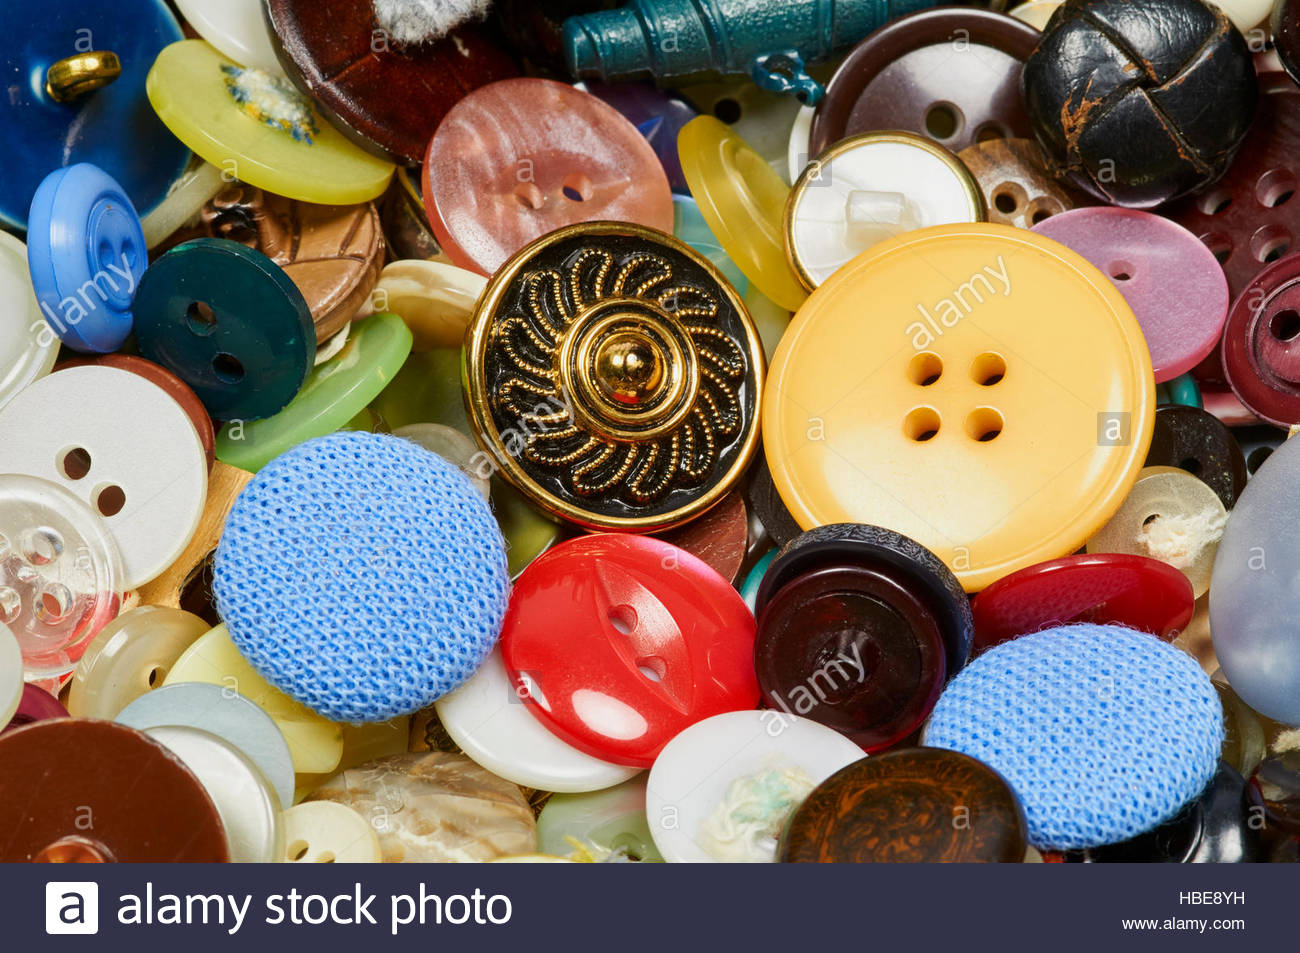 A selection of mixed buttons on a display stand - Stock Image